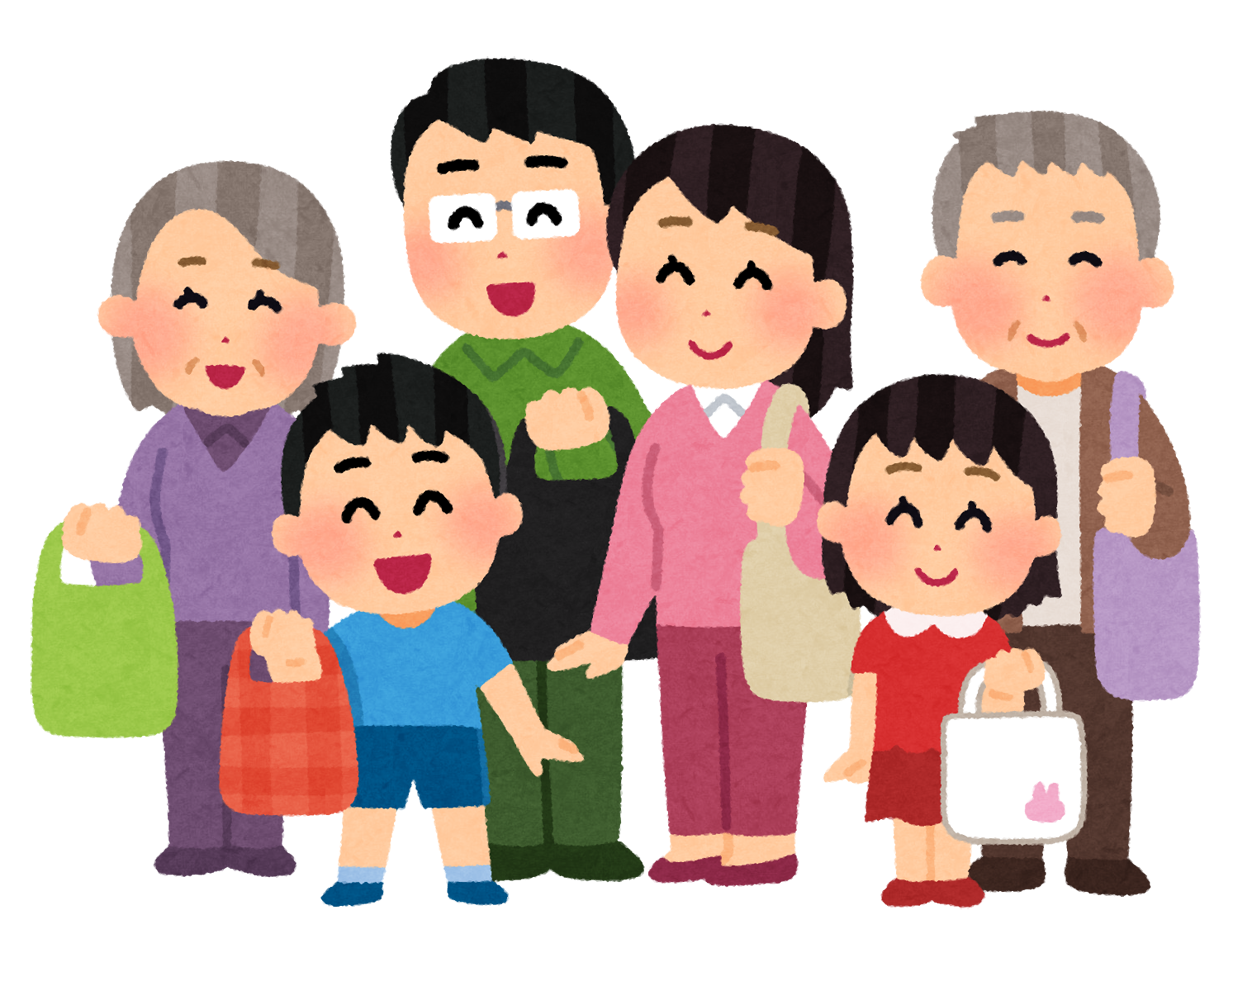 family_shopping_bag_eco.png (1233×1000)